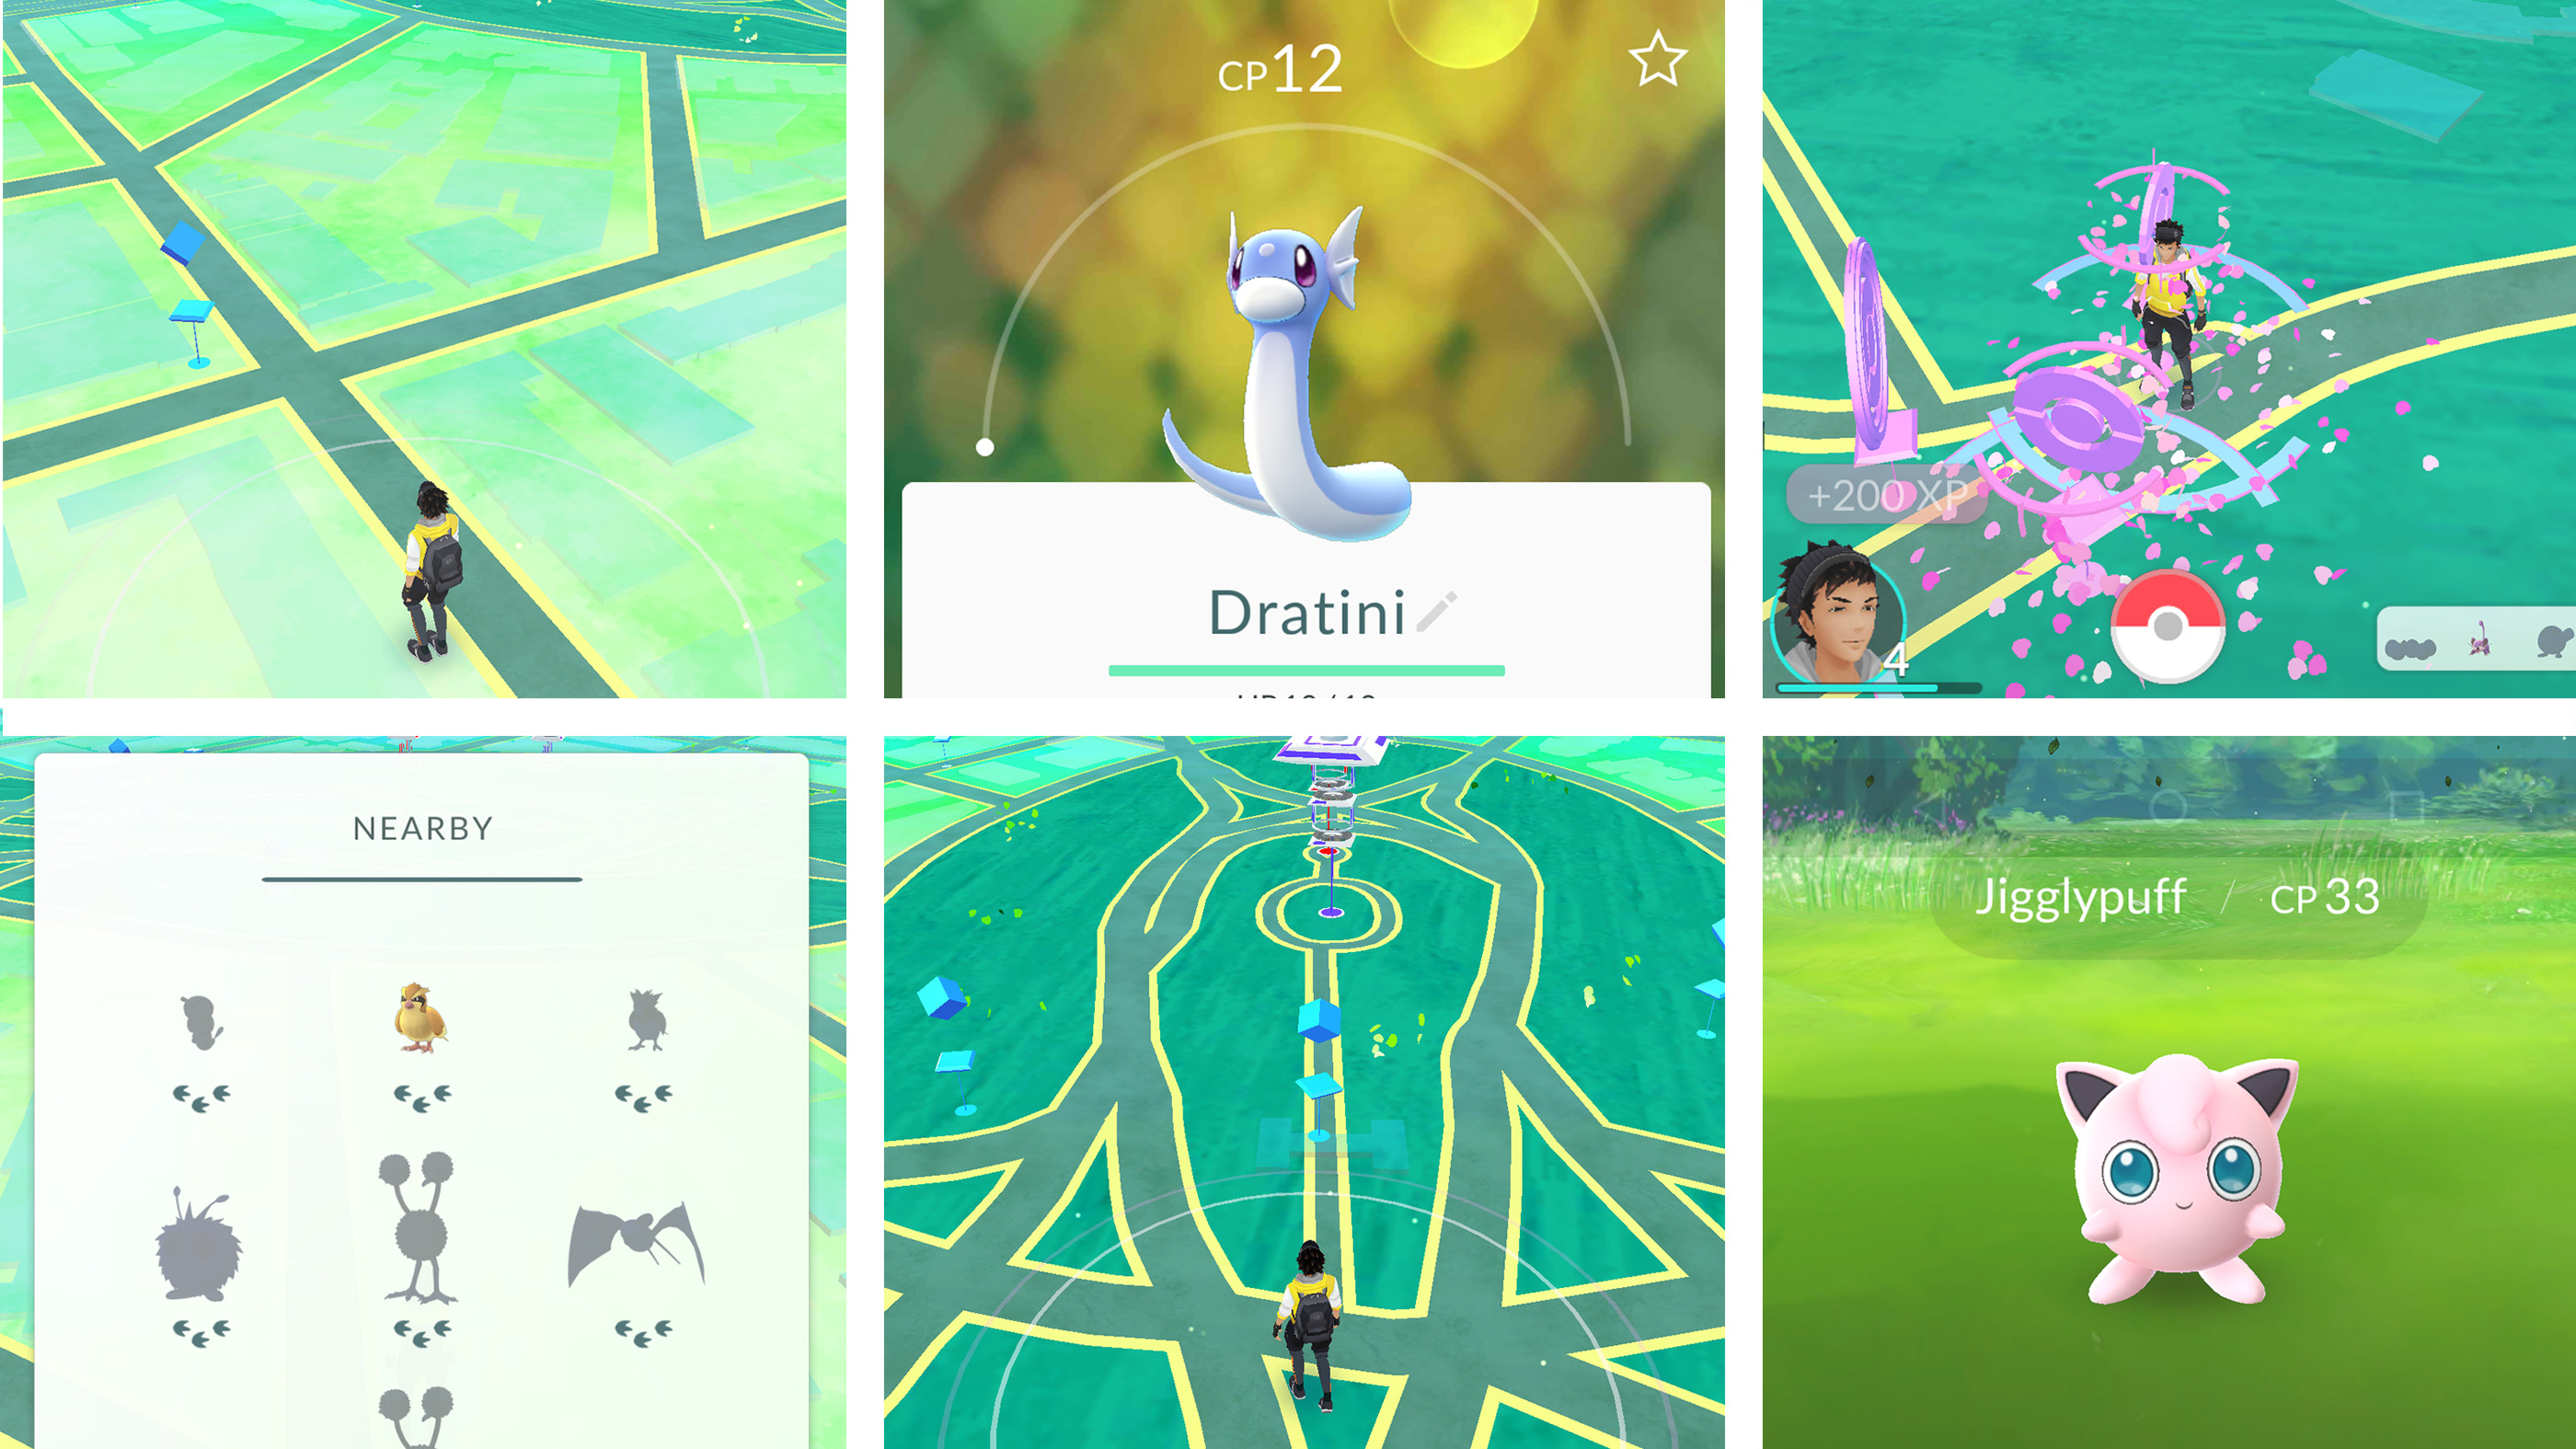 ef8e0355 Pokemon Go complete guide: tips, tricks, cheats — Quartz